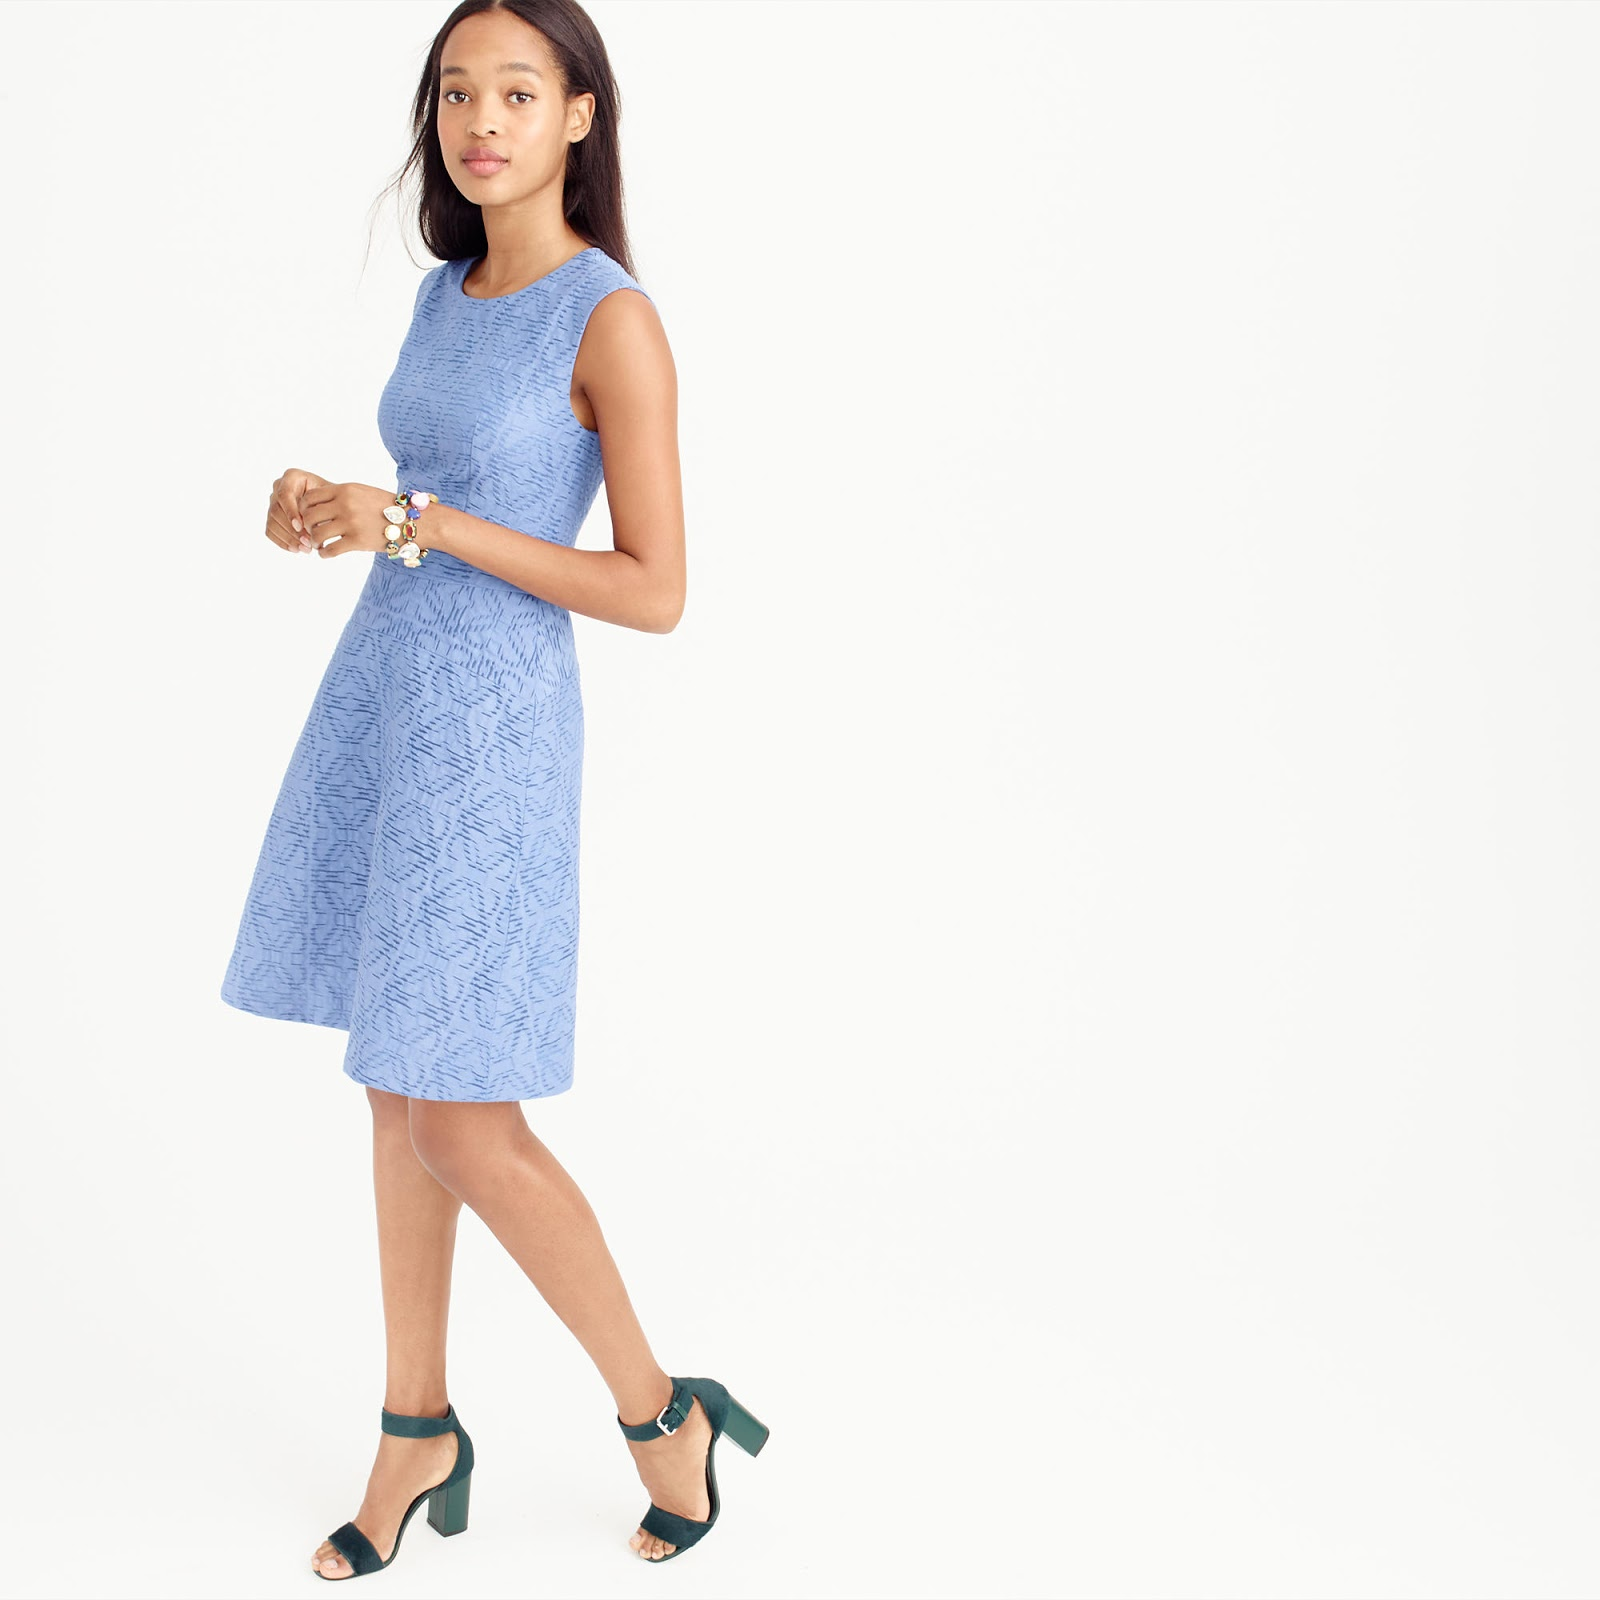 J Crew Updates Website With New Arrivals